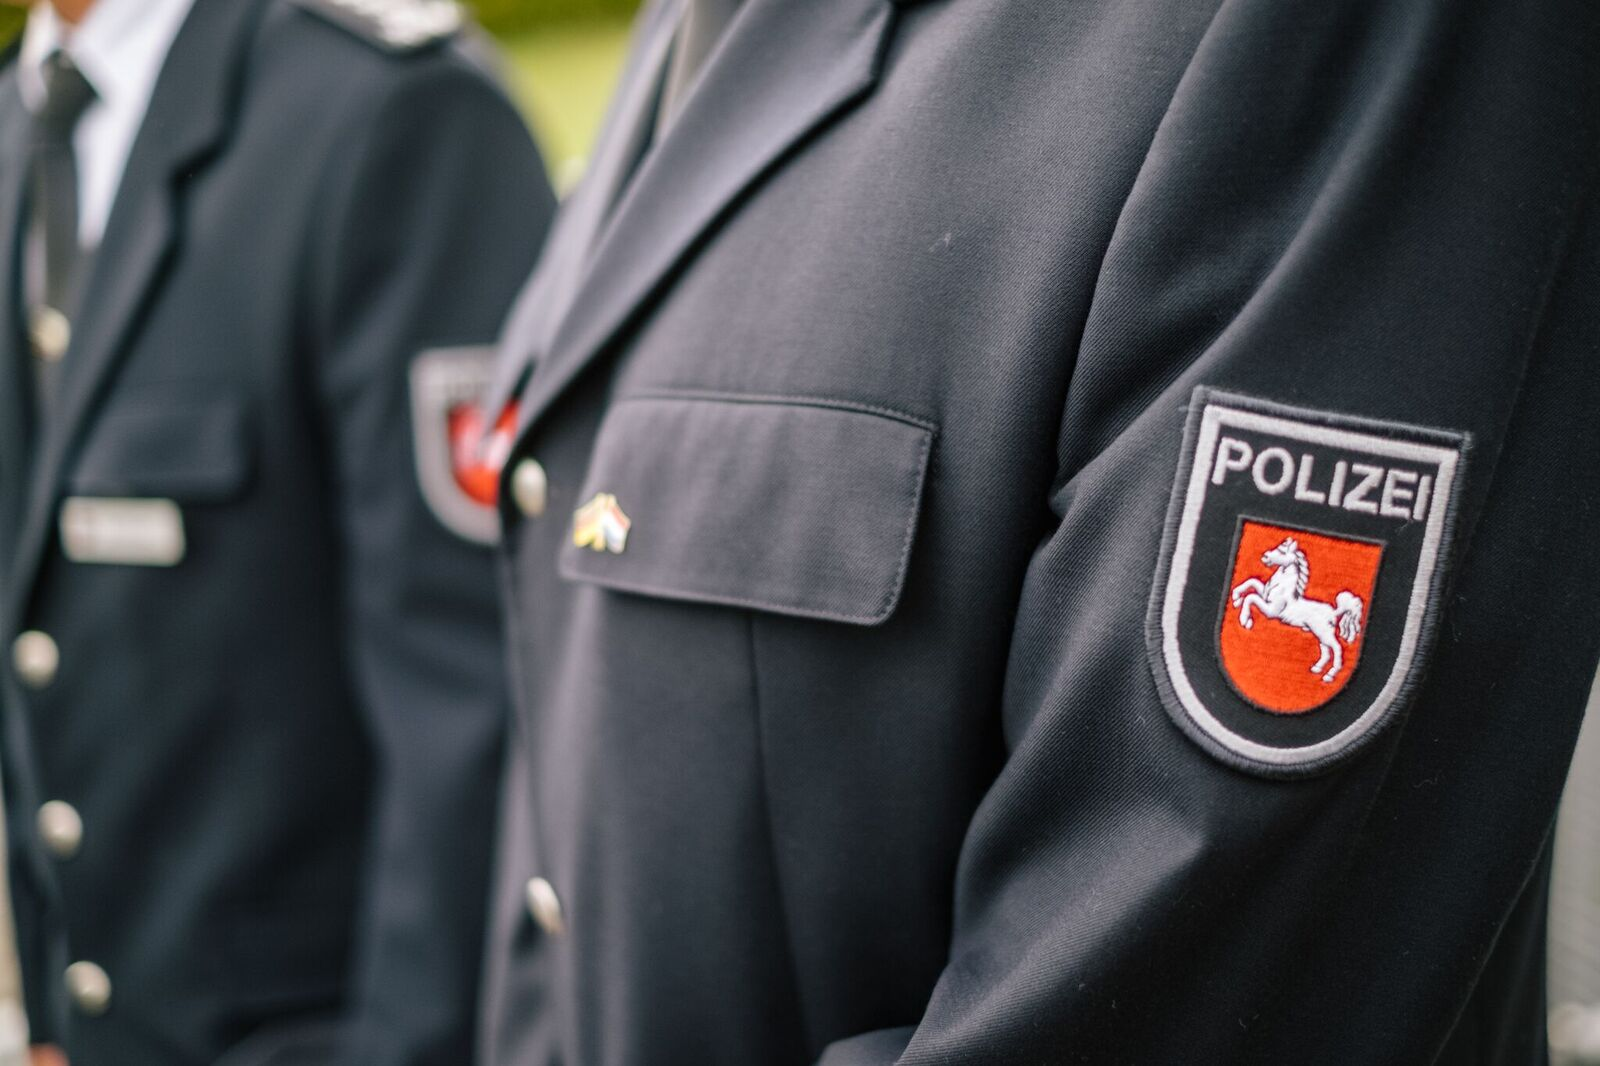 Foto einer Person in Polizeiuniform